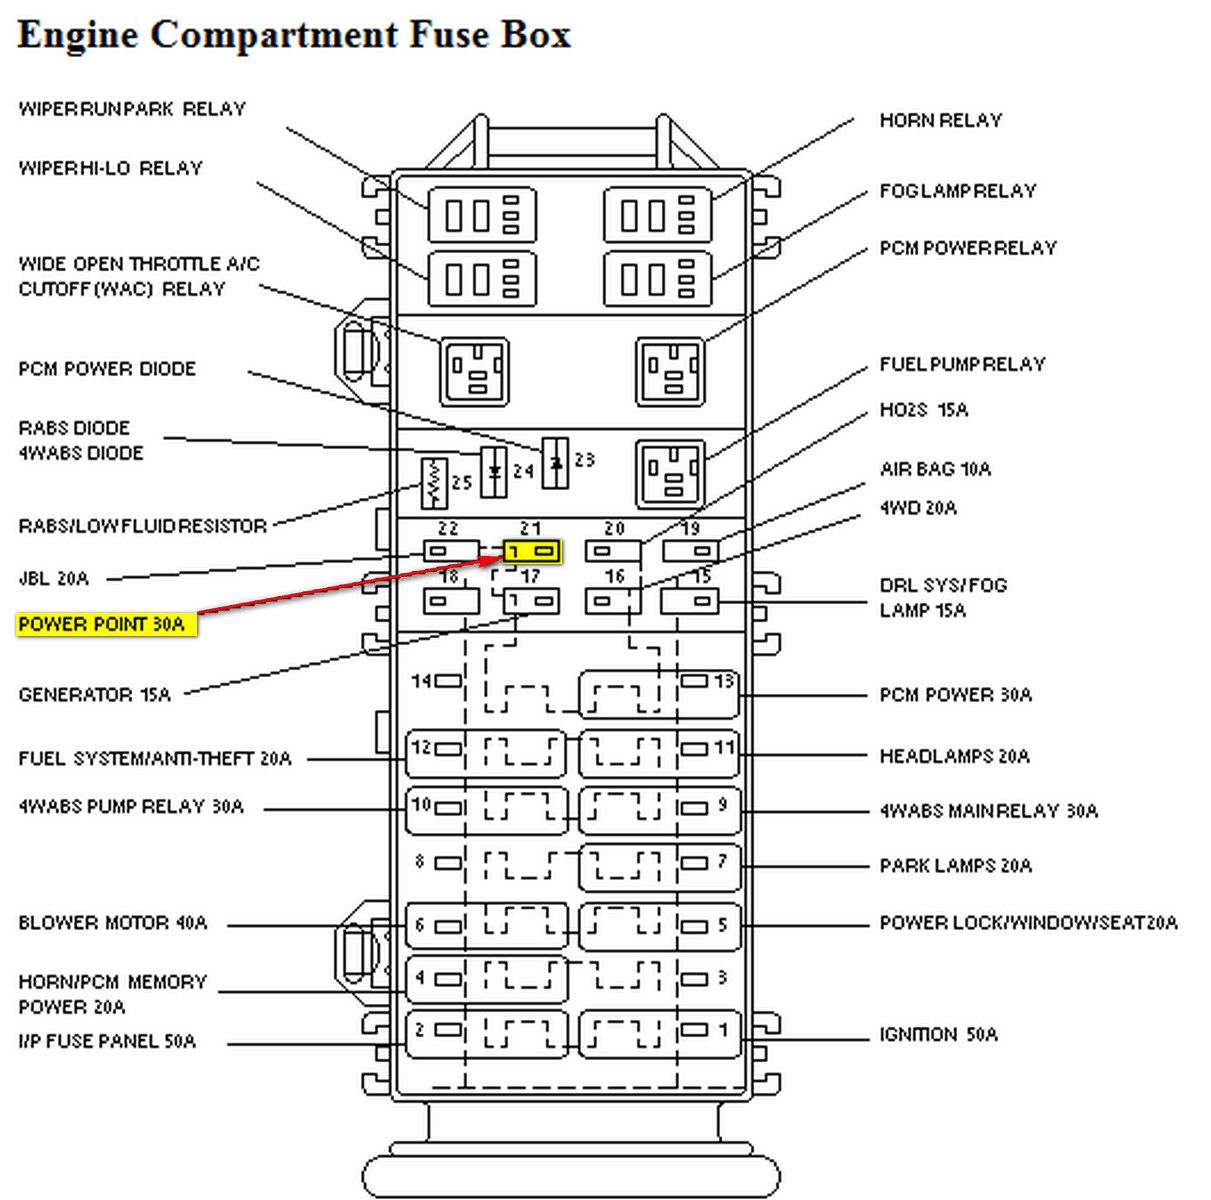 2000 Ranger Fuse Box Wiring Diagram Data 00 Ford Explorer 1998 1999 Panel